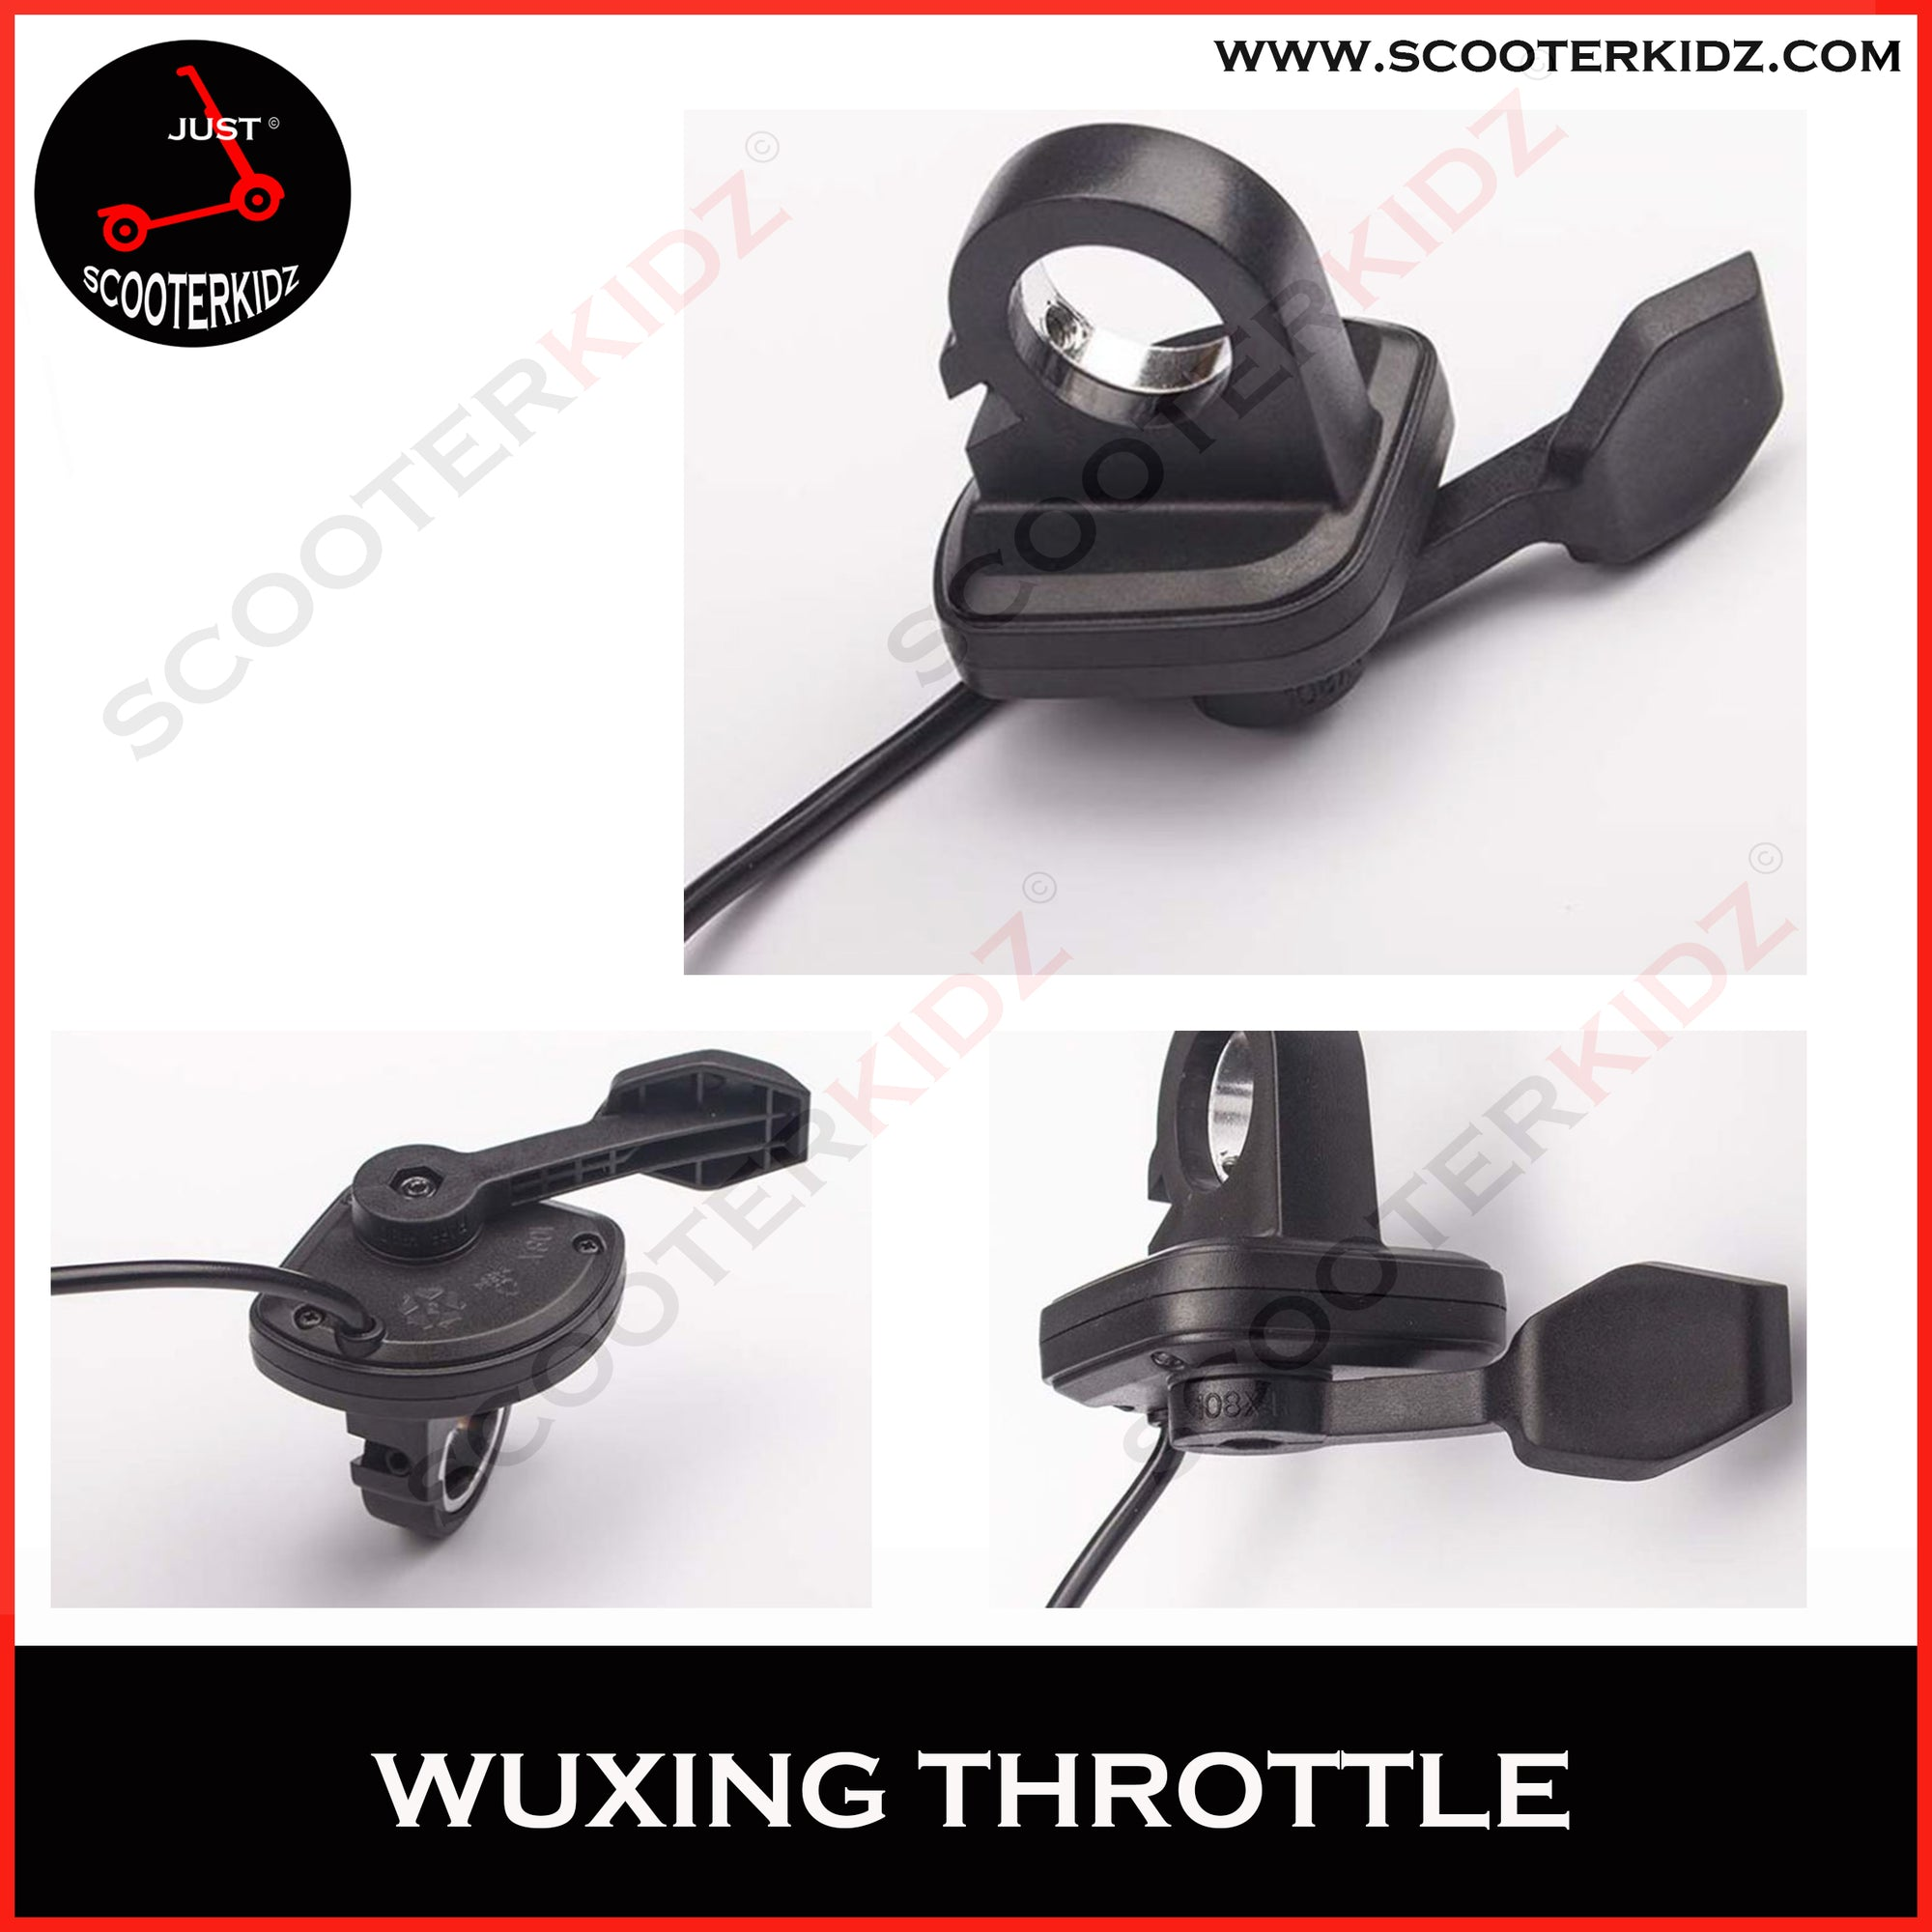 WUXING Finger/Thumb throttle